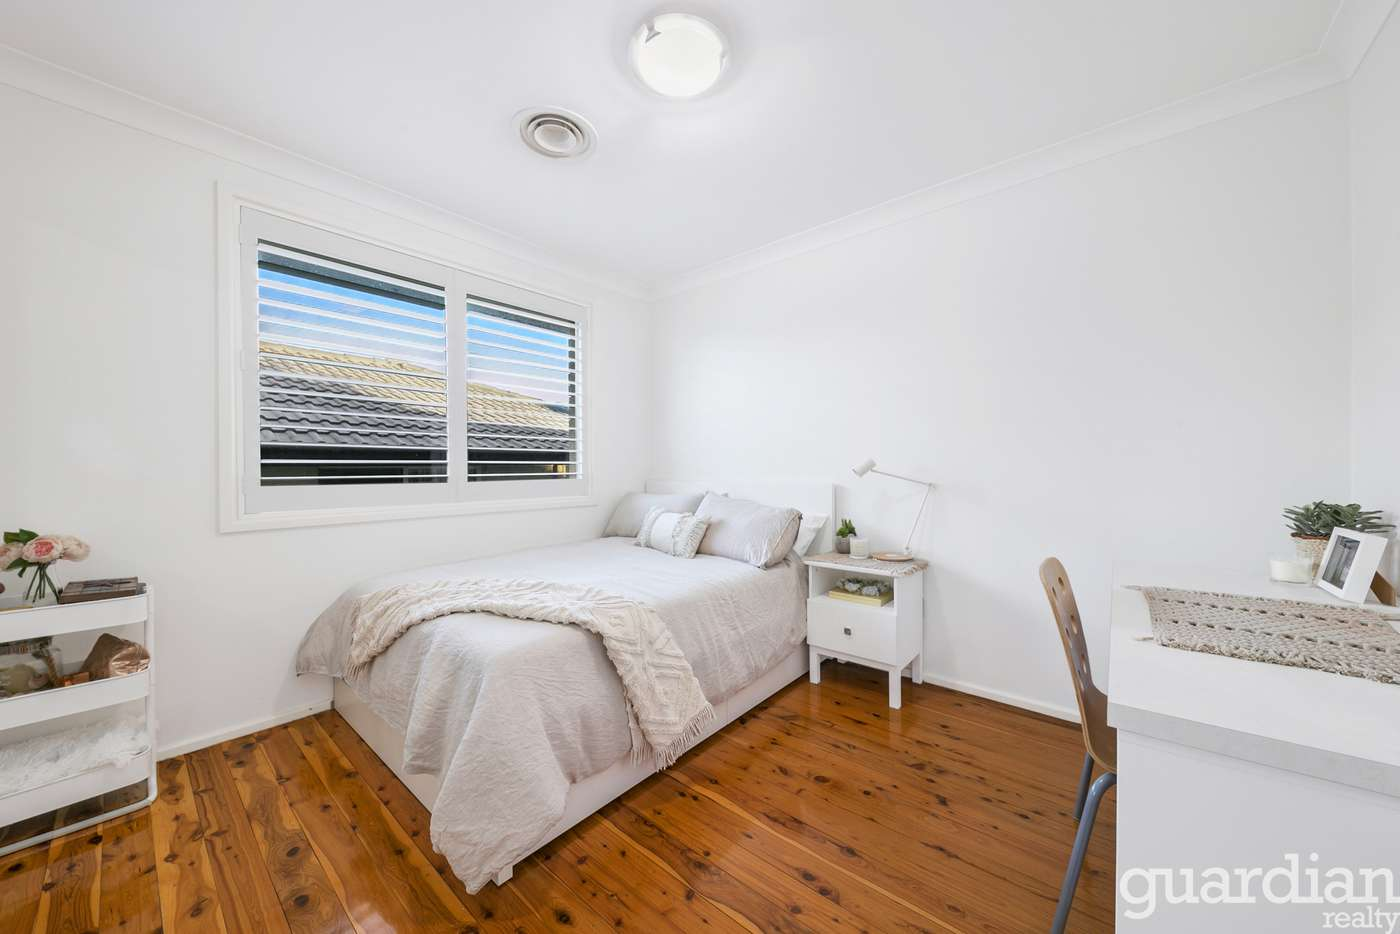 Sixth view of Homely house listing, 1 Darrambal Avenue, Baulkham Hills NSW 2153